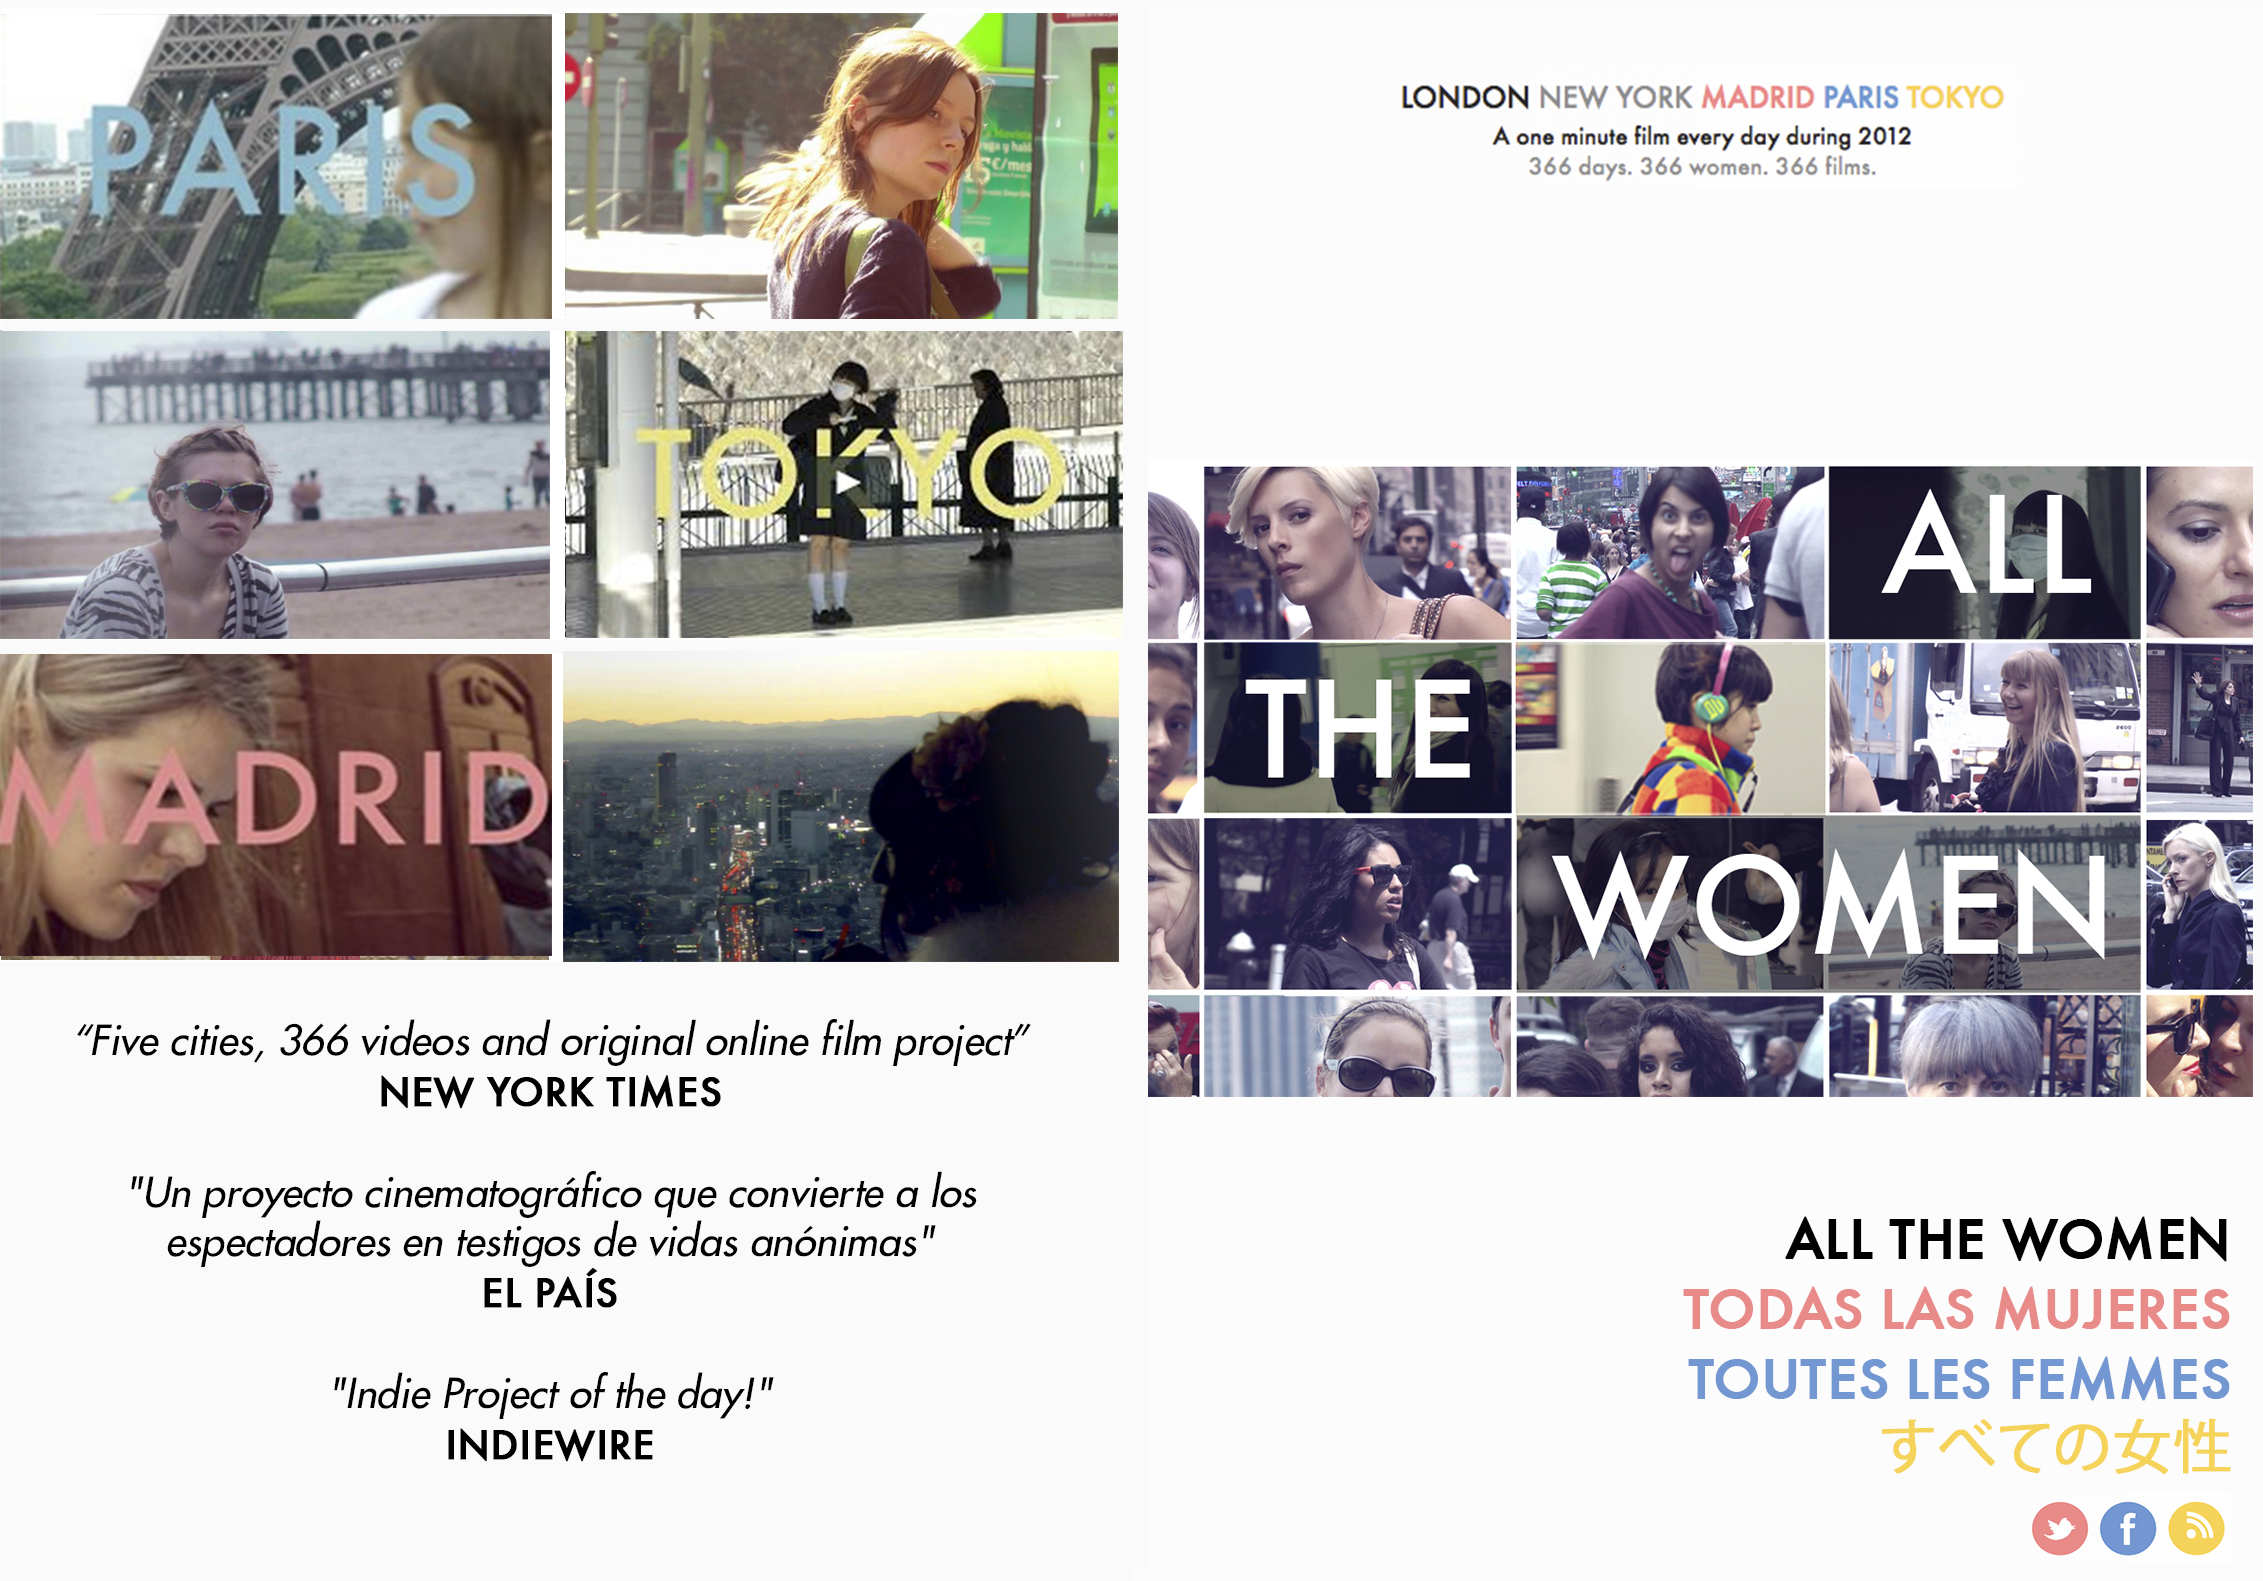 ALL THE WOMEN                                                                                                                                                                                                            2012, 366 mins. (1.85.1, HD) Documental.                                                                                                                                                                   Una producción de Pablo Maqueda.                                                                                                                                                                              VER ONLINE